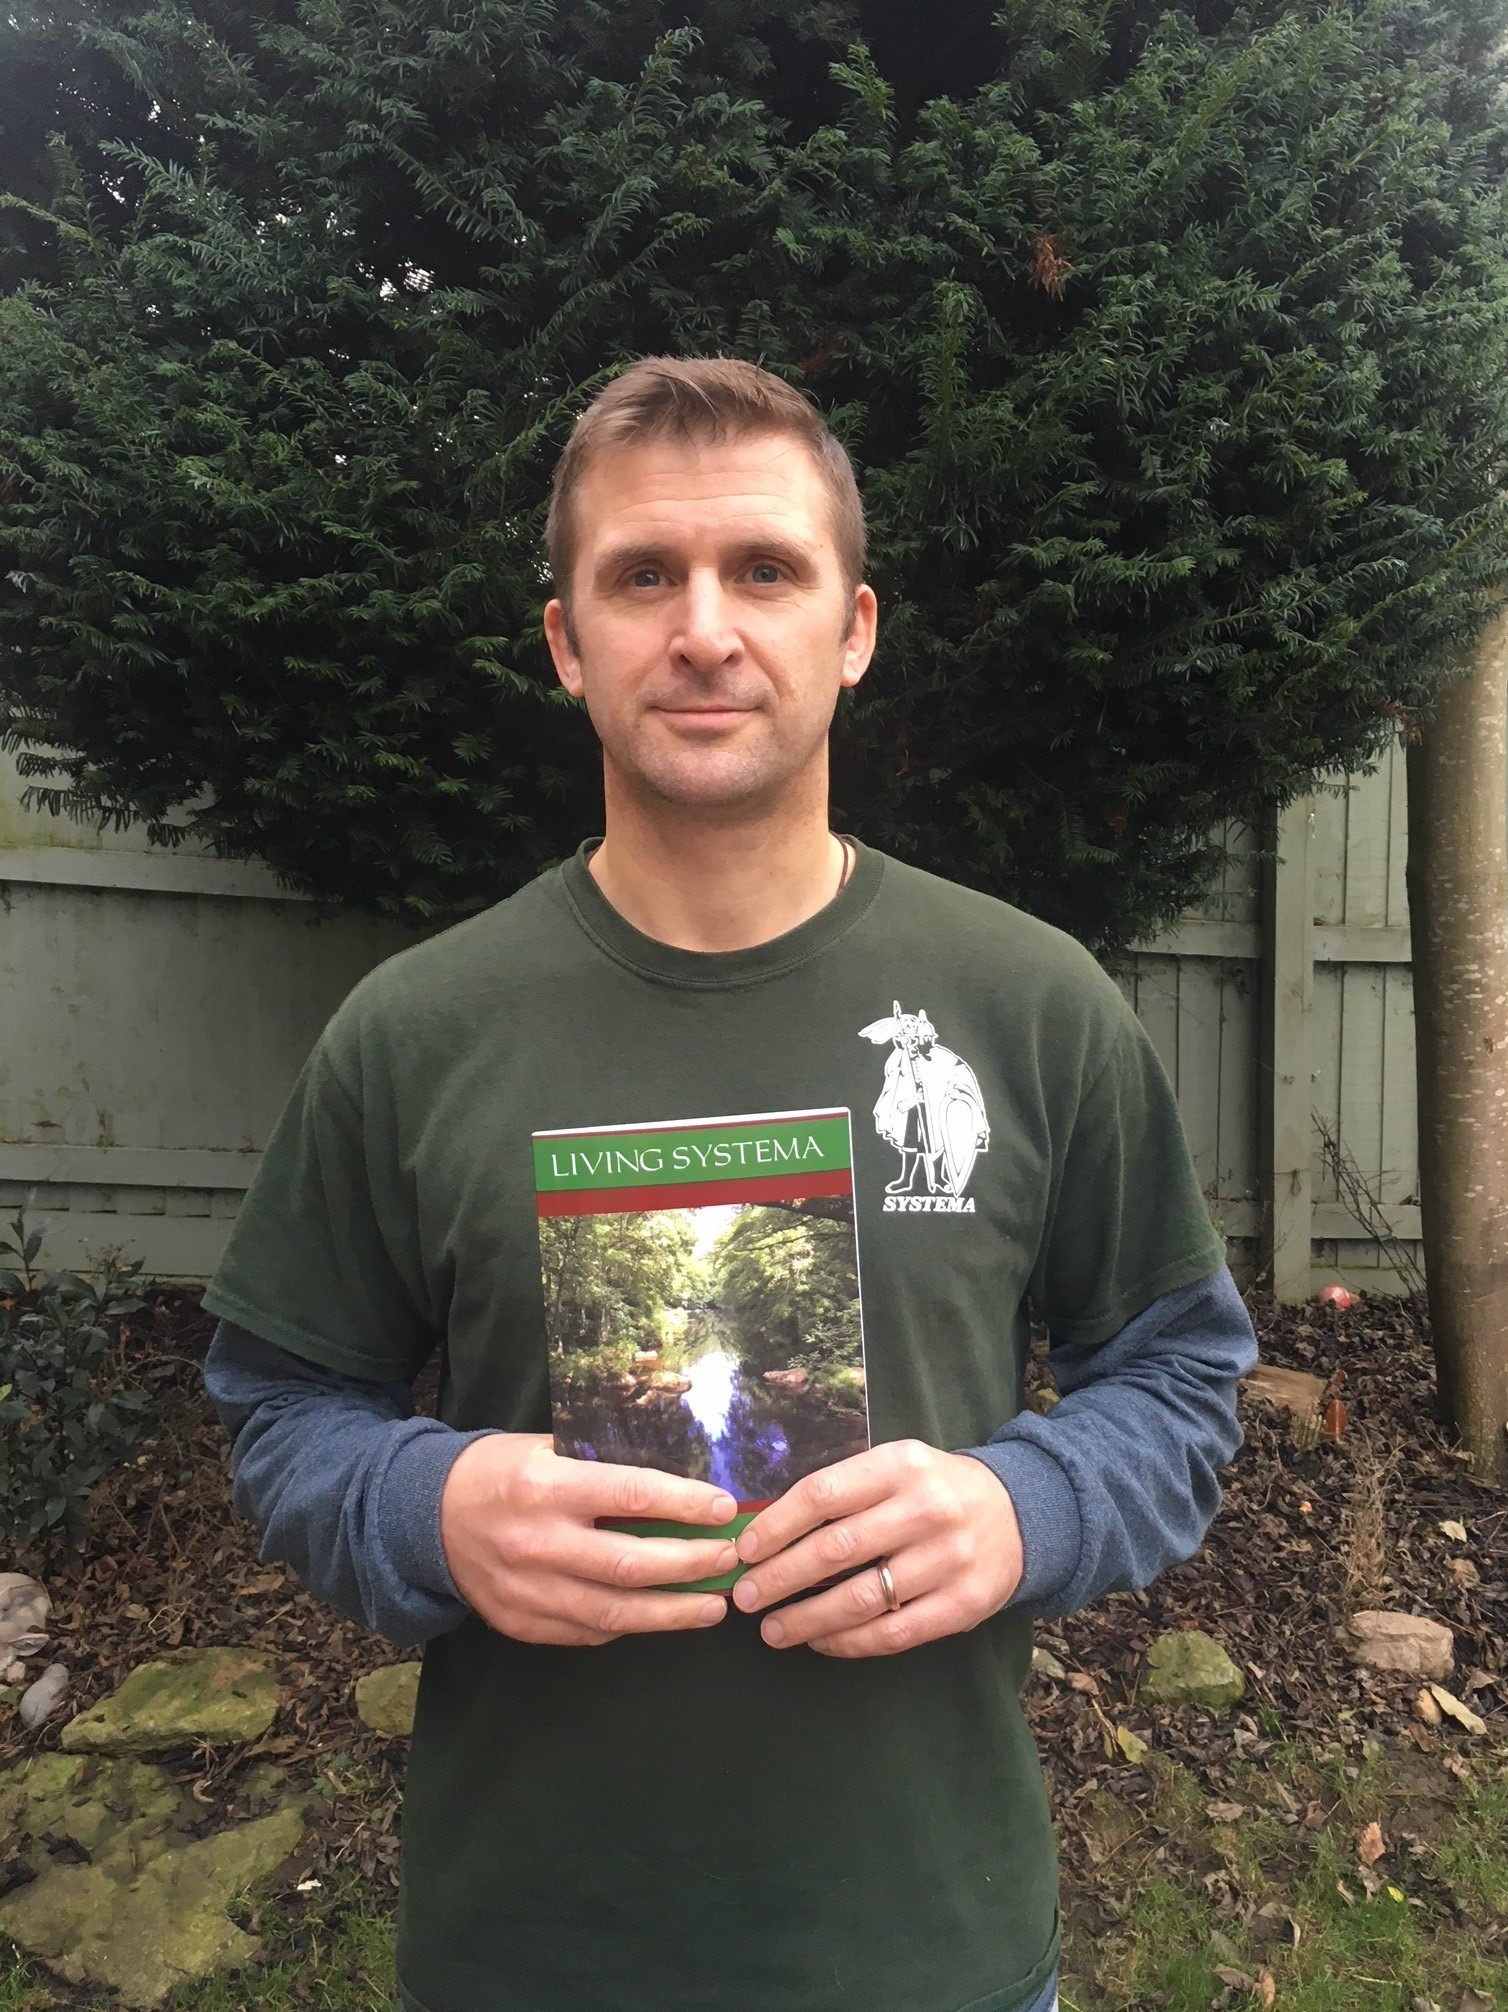 Matt Hill of the System Academy in Melksham with his latest book, Living Systema.